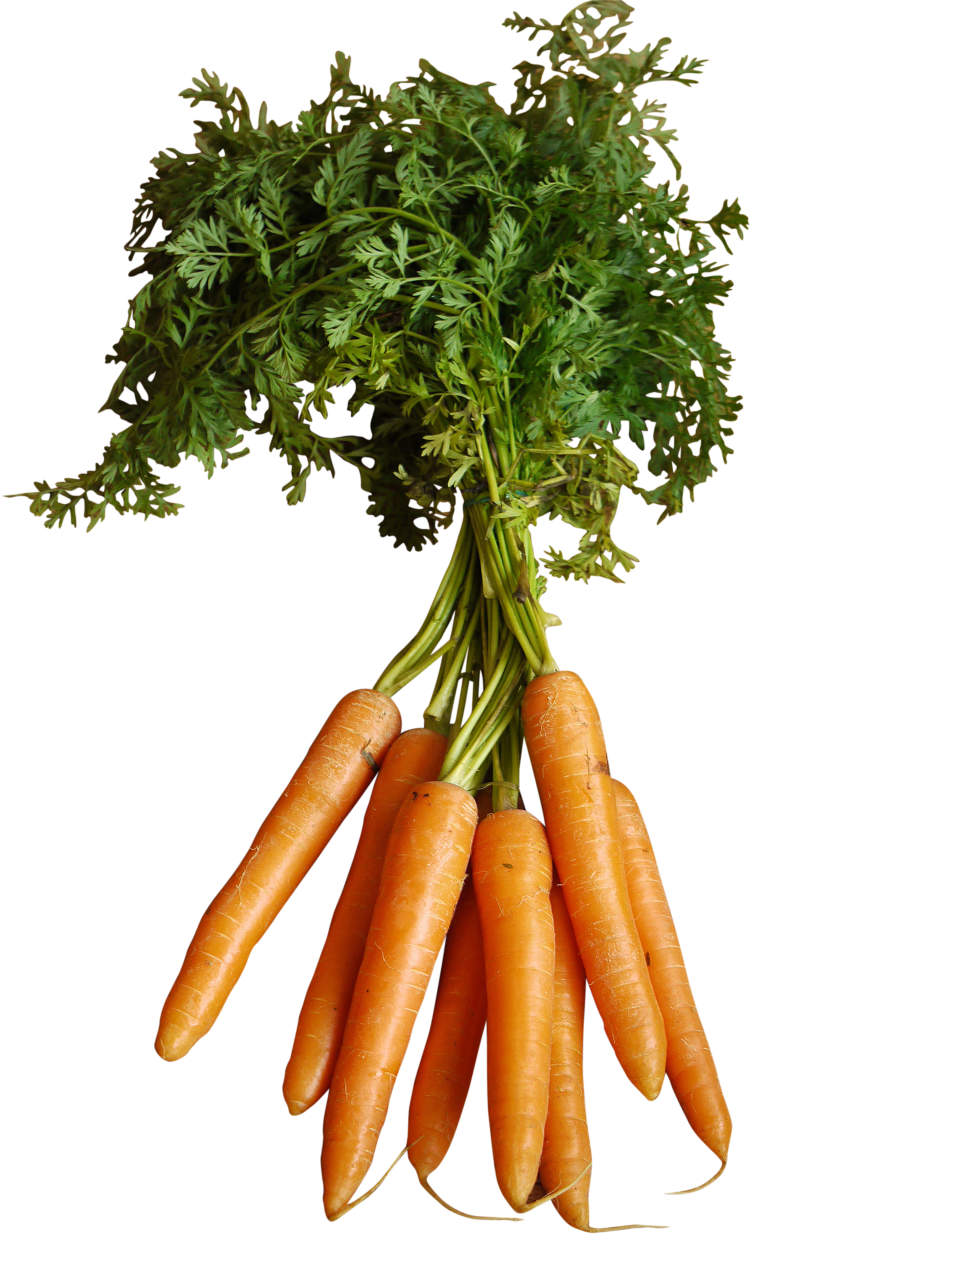 Orange Carrots with Stem PNG Image